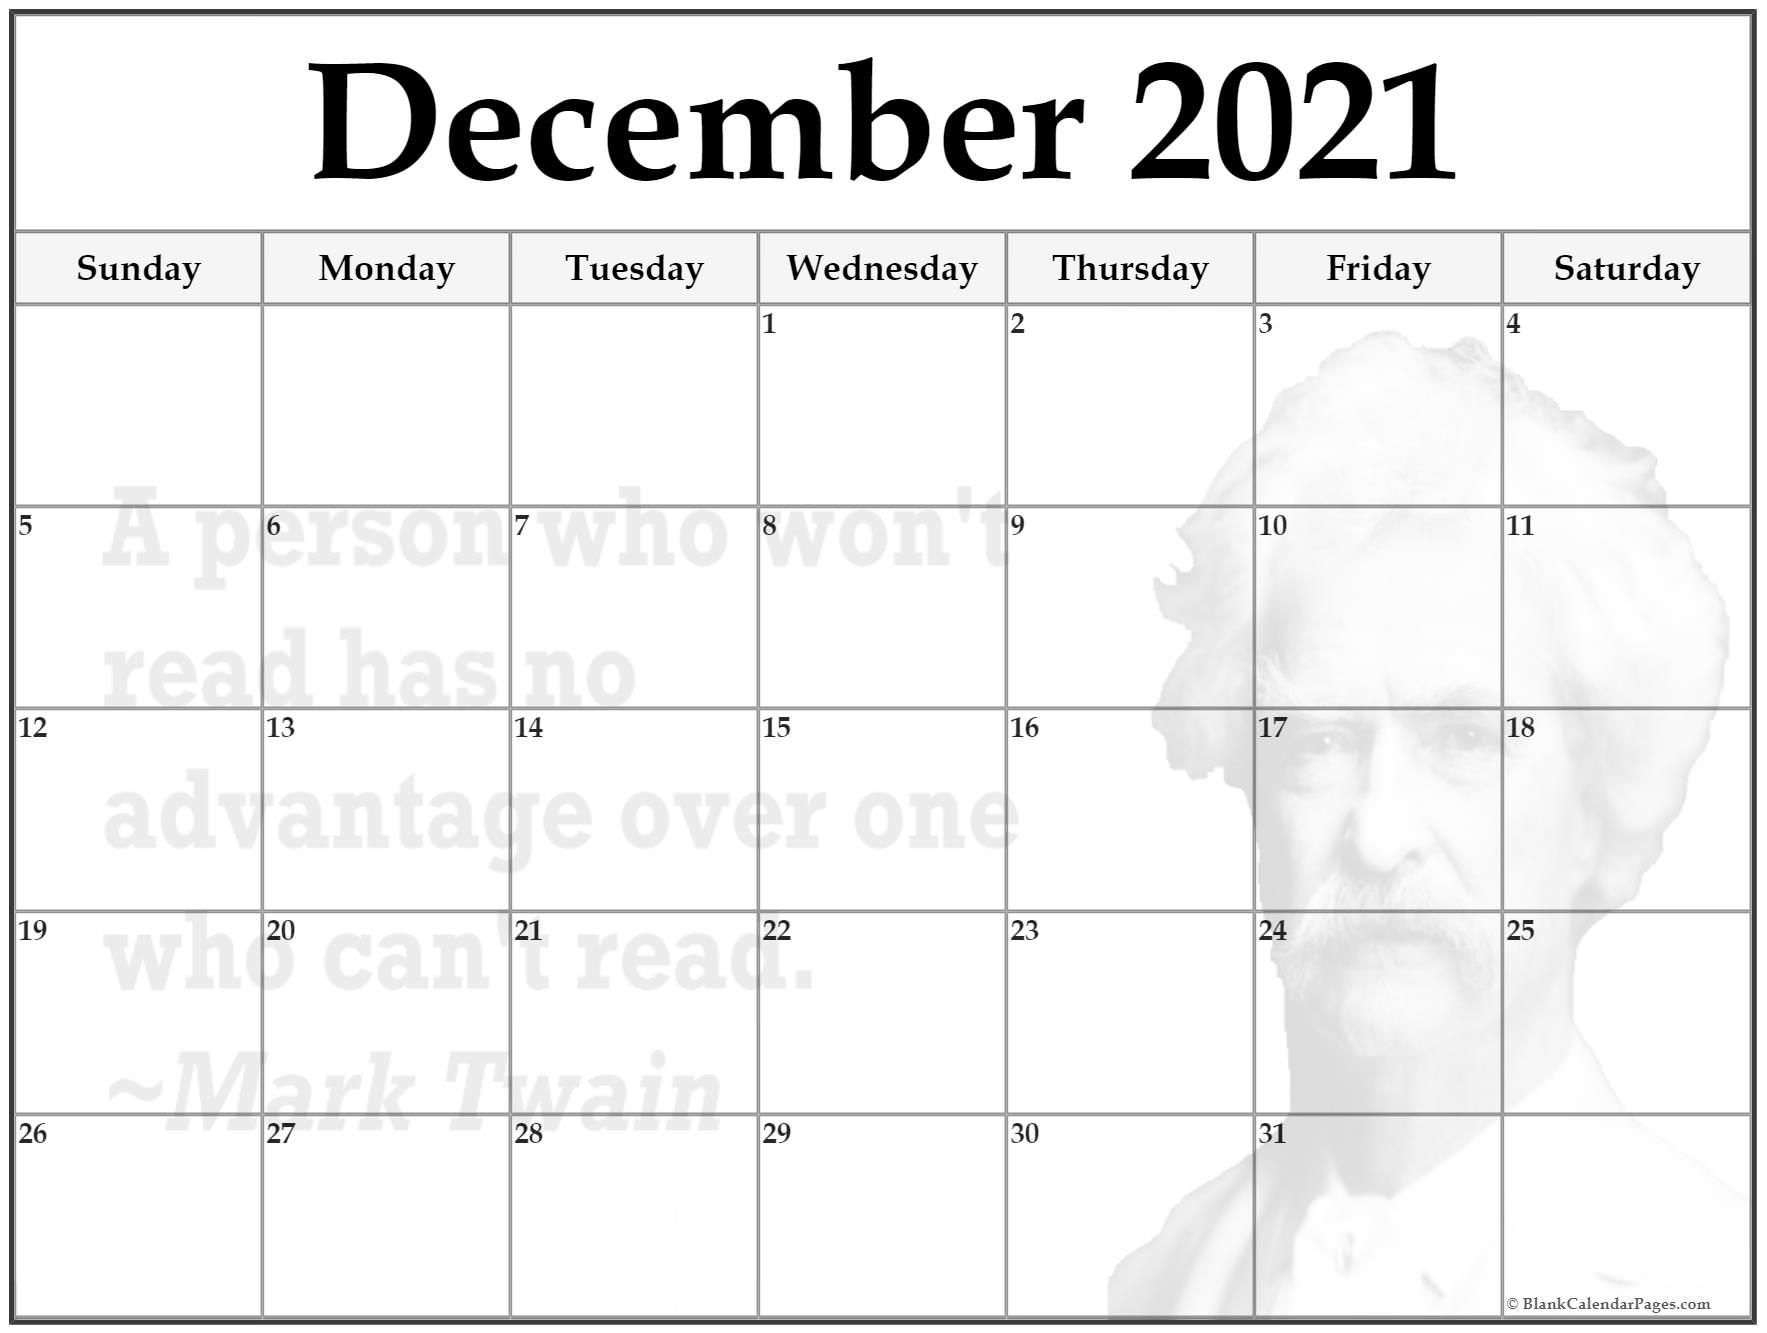 December 2021 printable quote calendar template. A person who won't read has no advantage over a person who can't read. ~Mark Twain